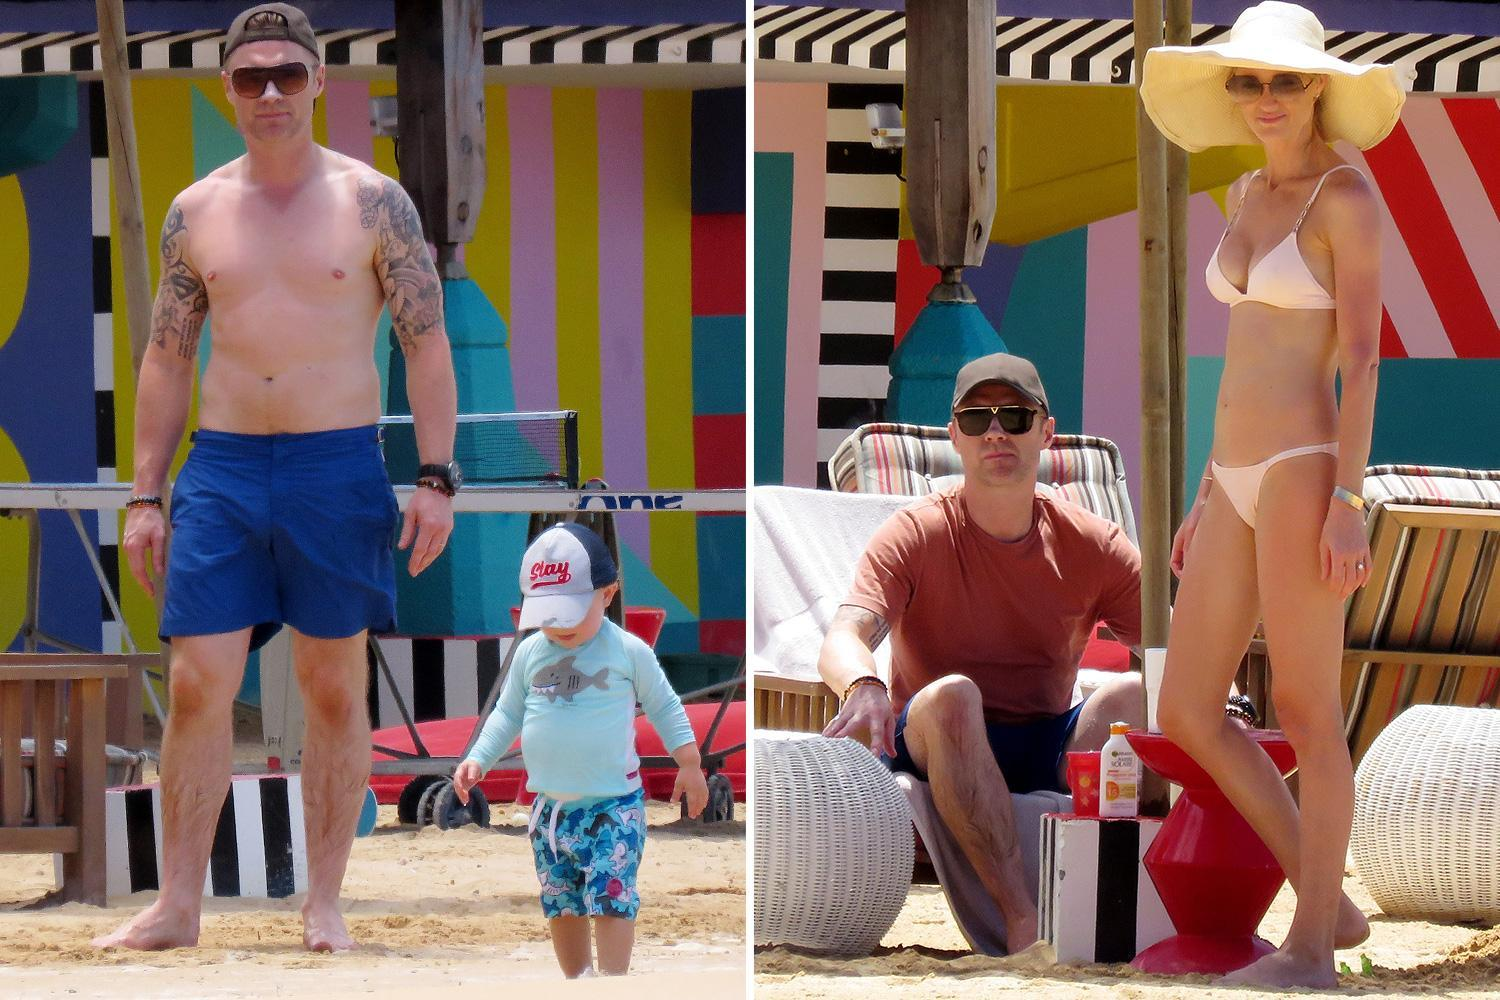 Ronan Keating goes shirtless as he and wife Storm play with their kids on the beach in Mauritius